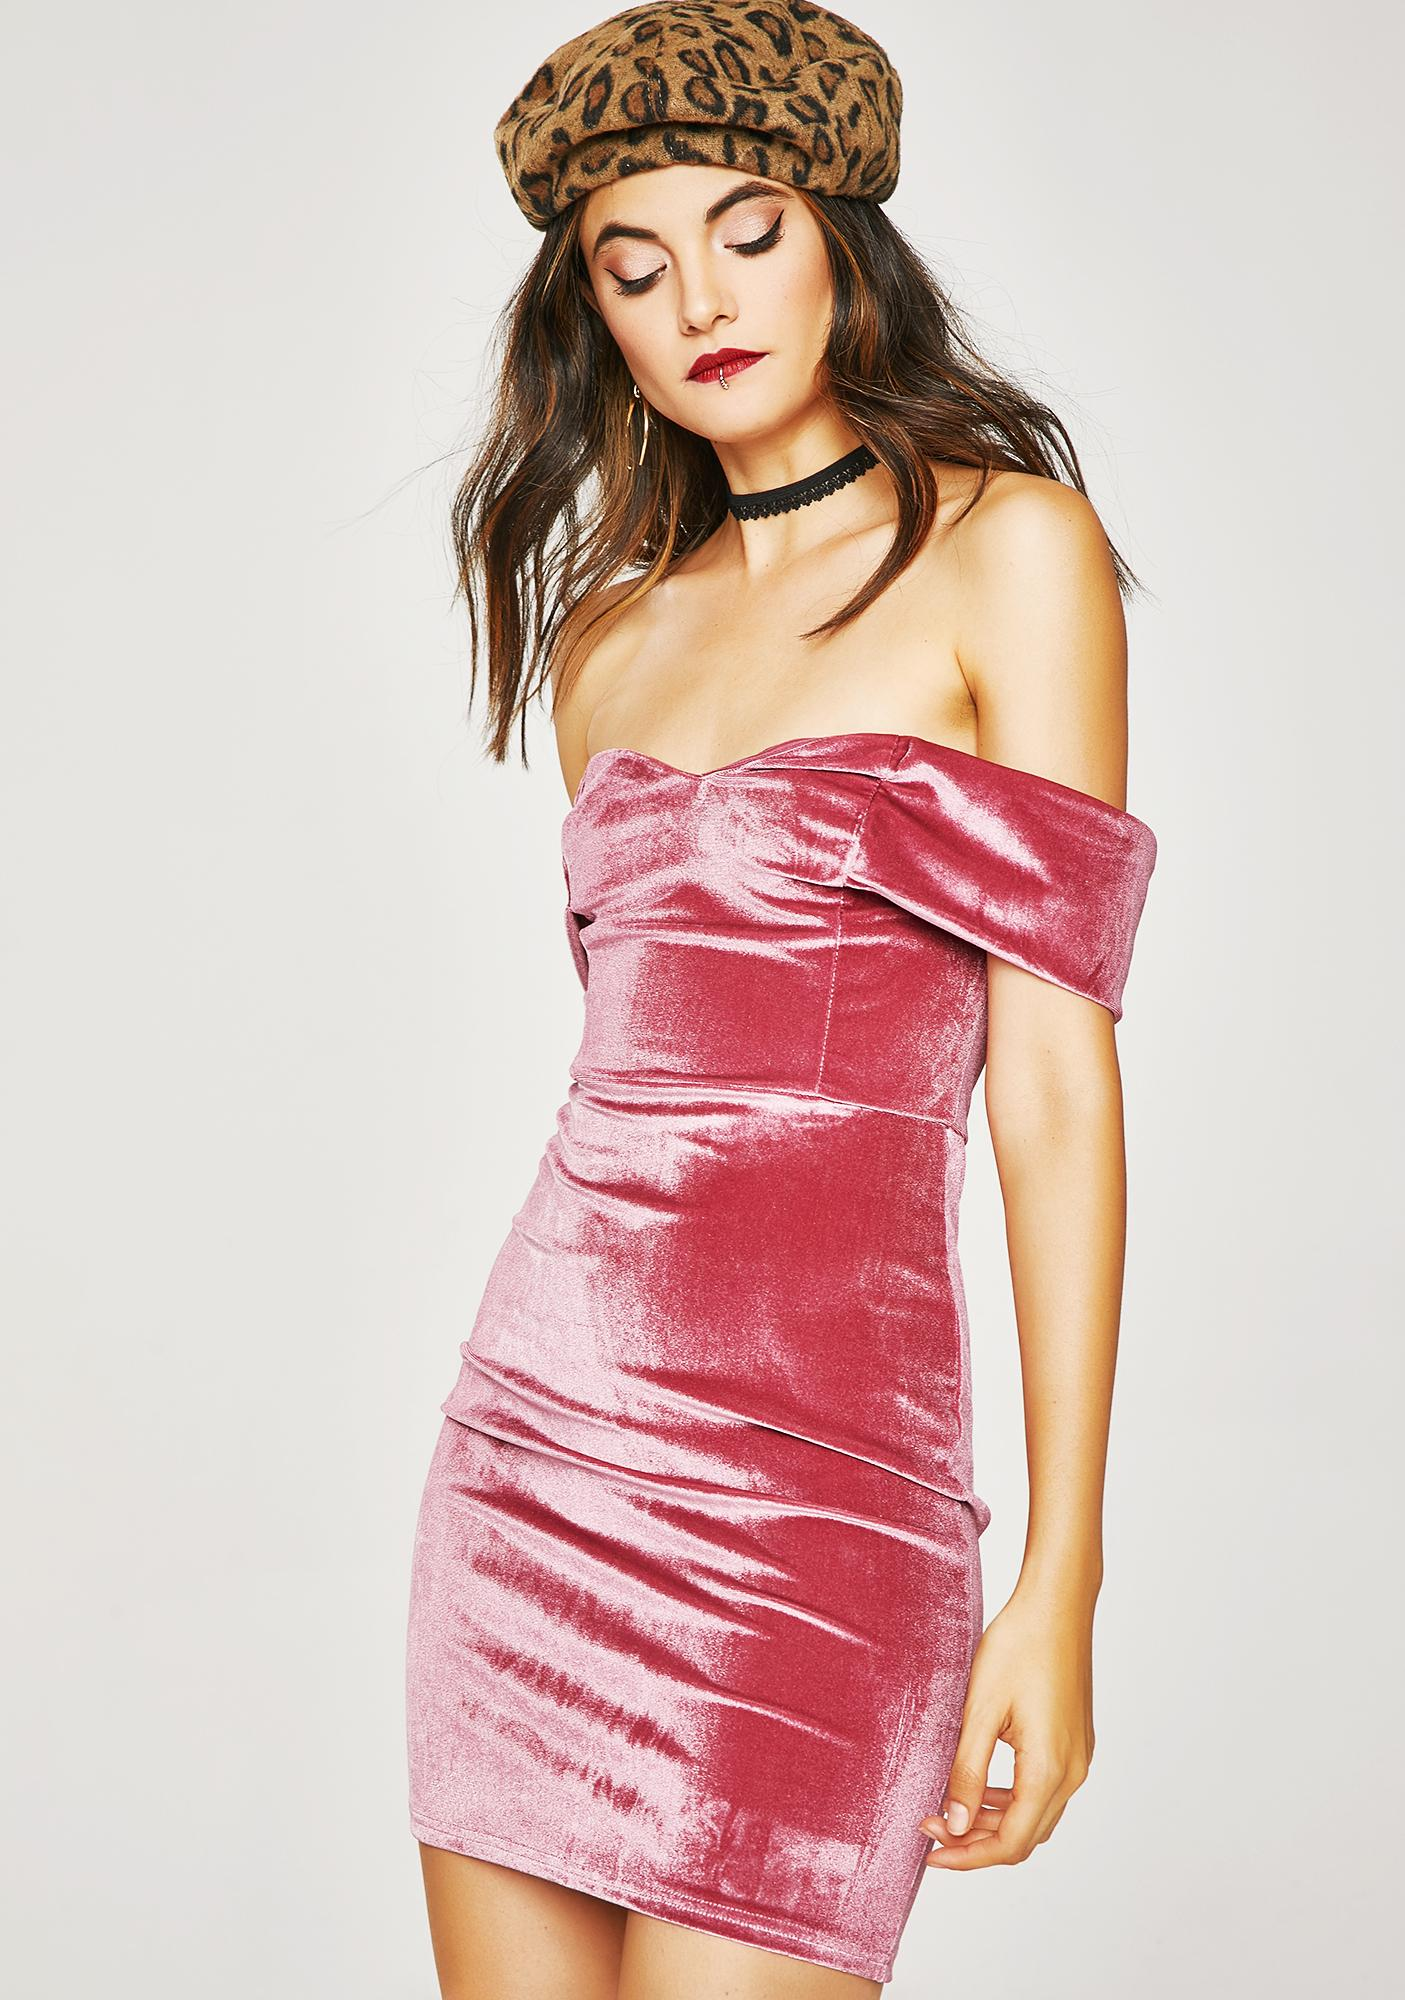 Homecoming Hunnie Velvet Dress